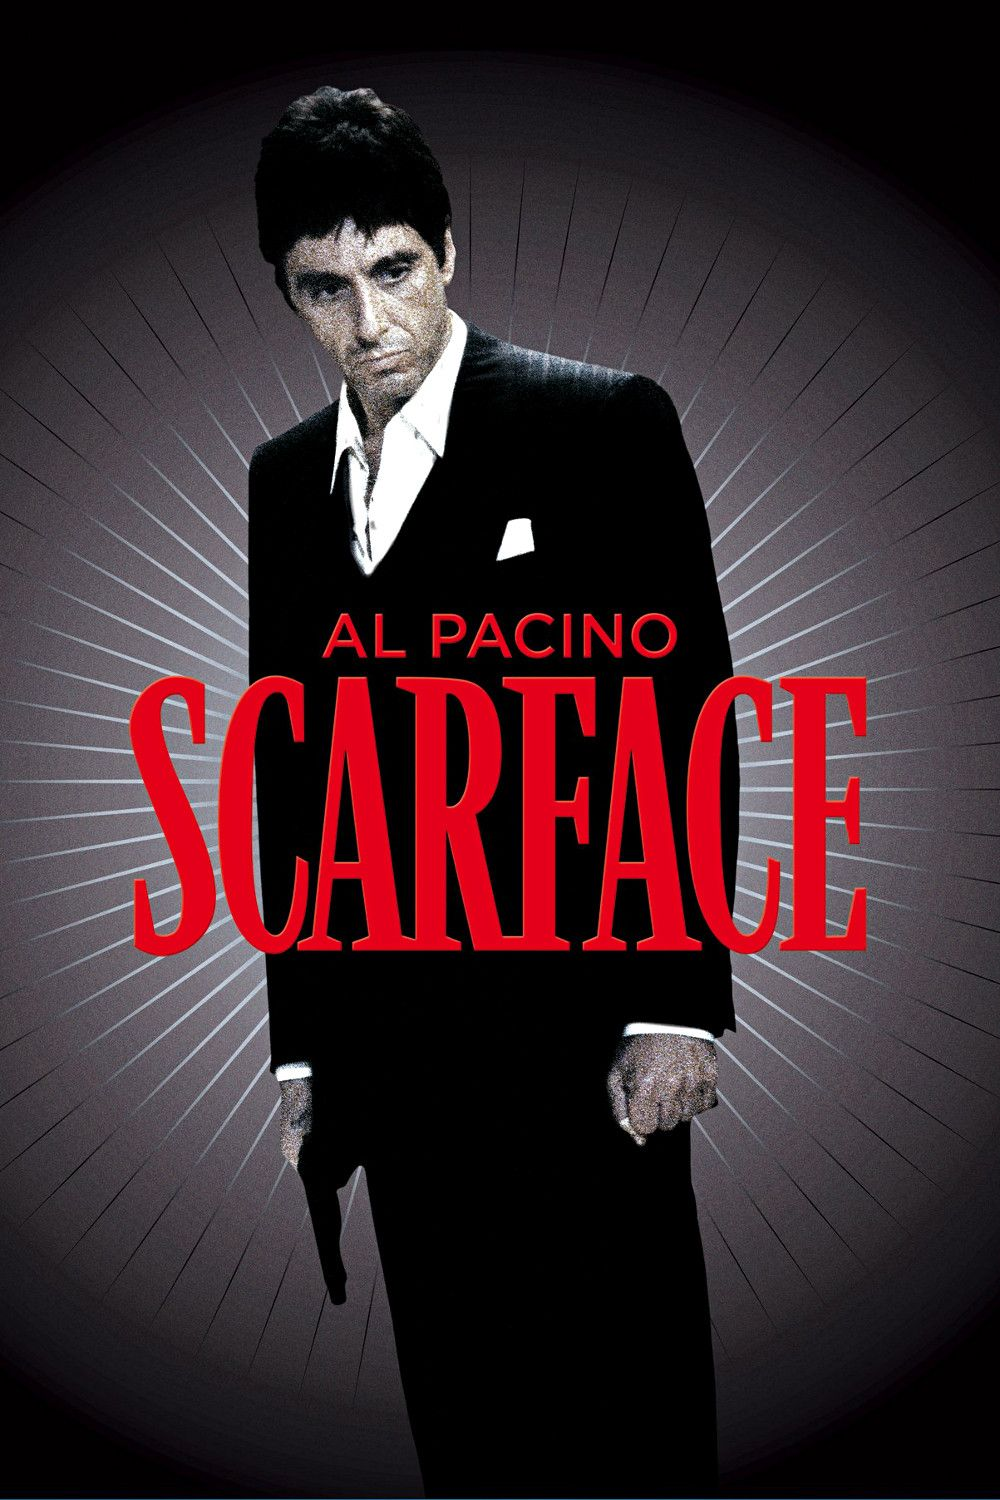 Image Detail For Scarface Poster Movie Poster 3 Celebrity And Movie Pictures Photos Scarface Poster Scarface Movie Scarface